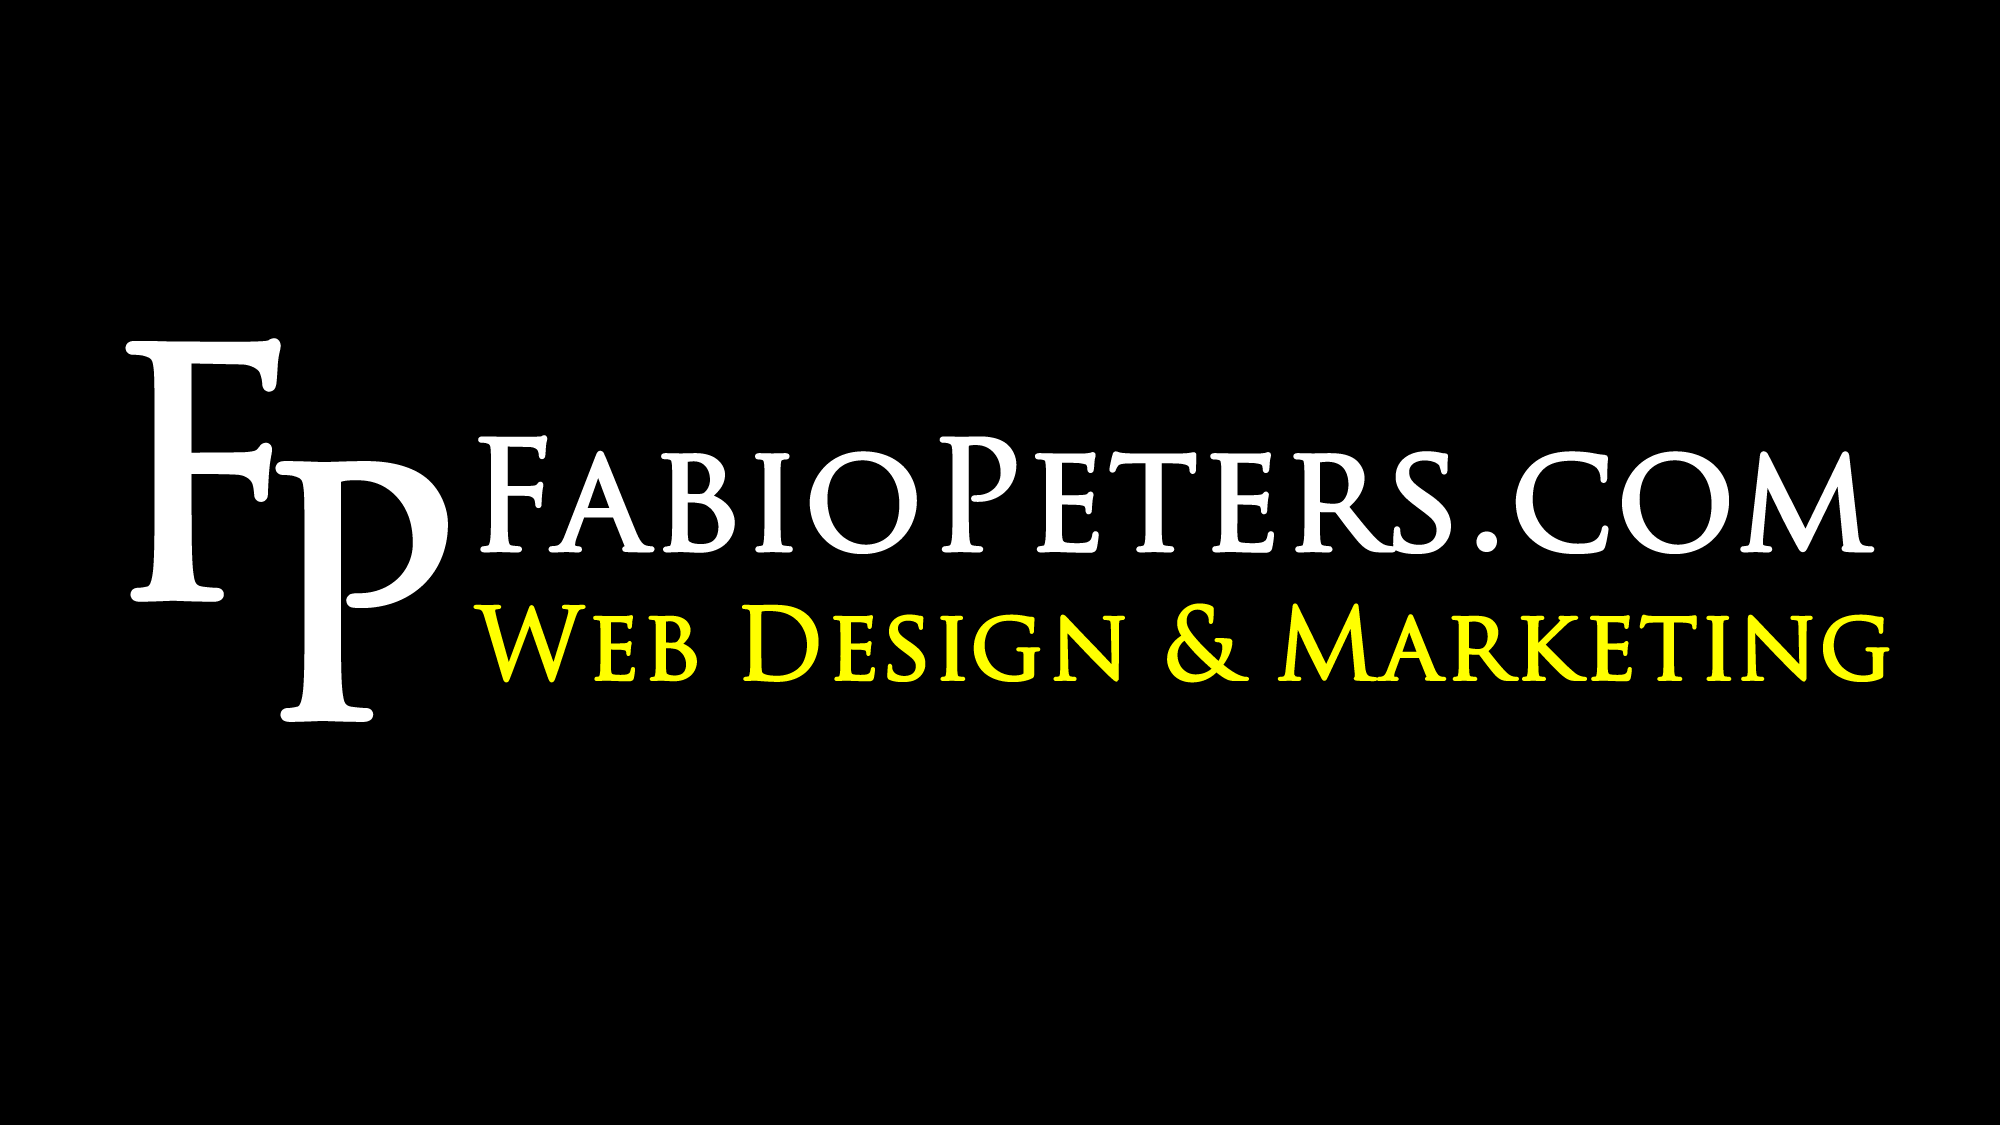 Fabio Peters Logo